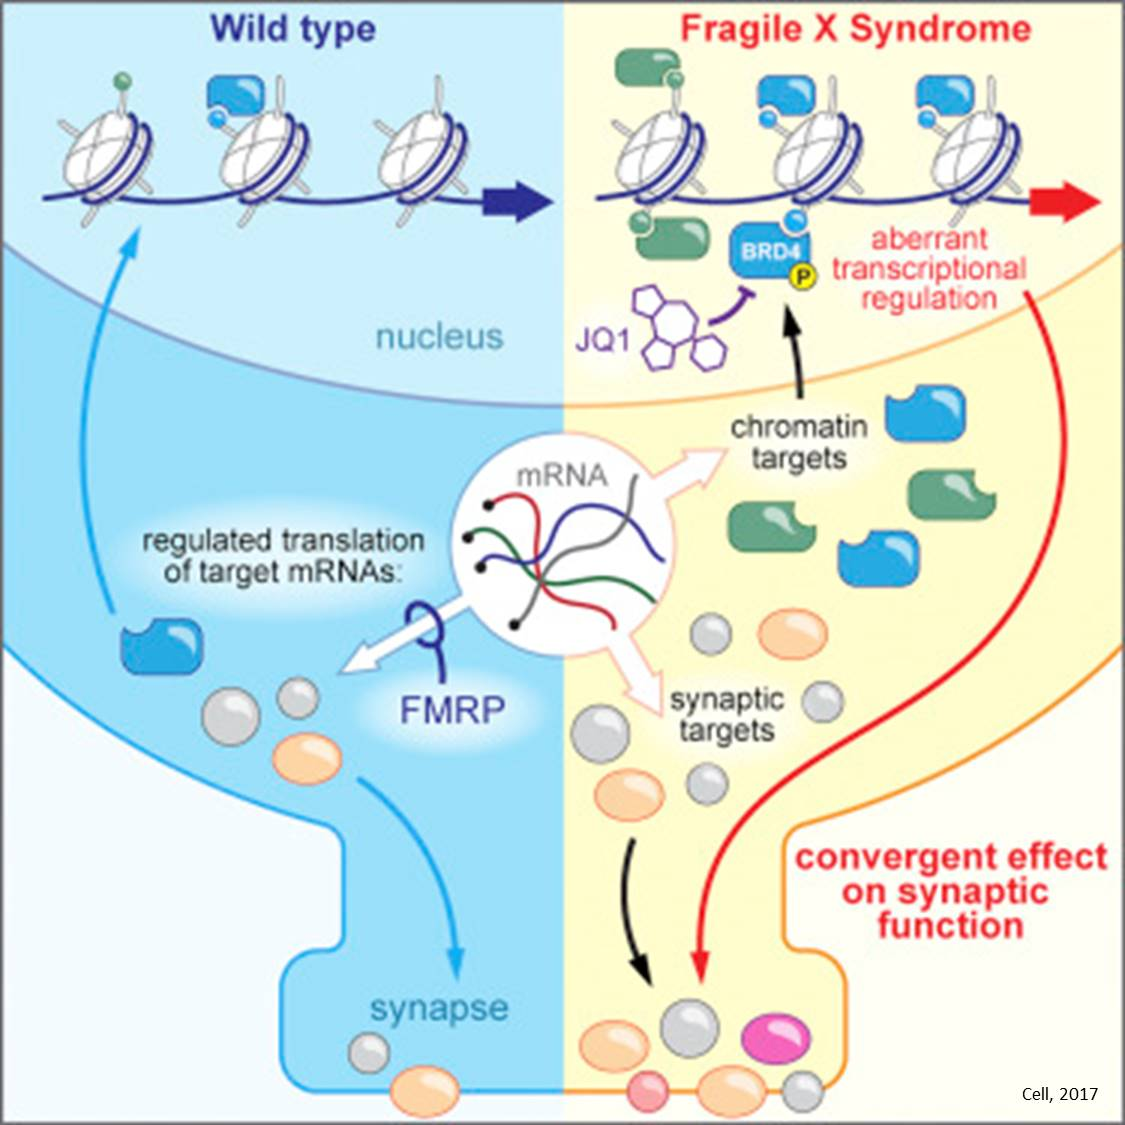 New targets for Fragile X Syndrome identified!